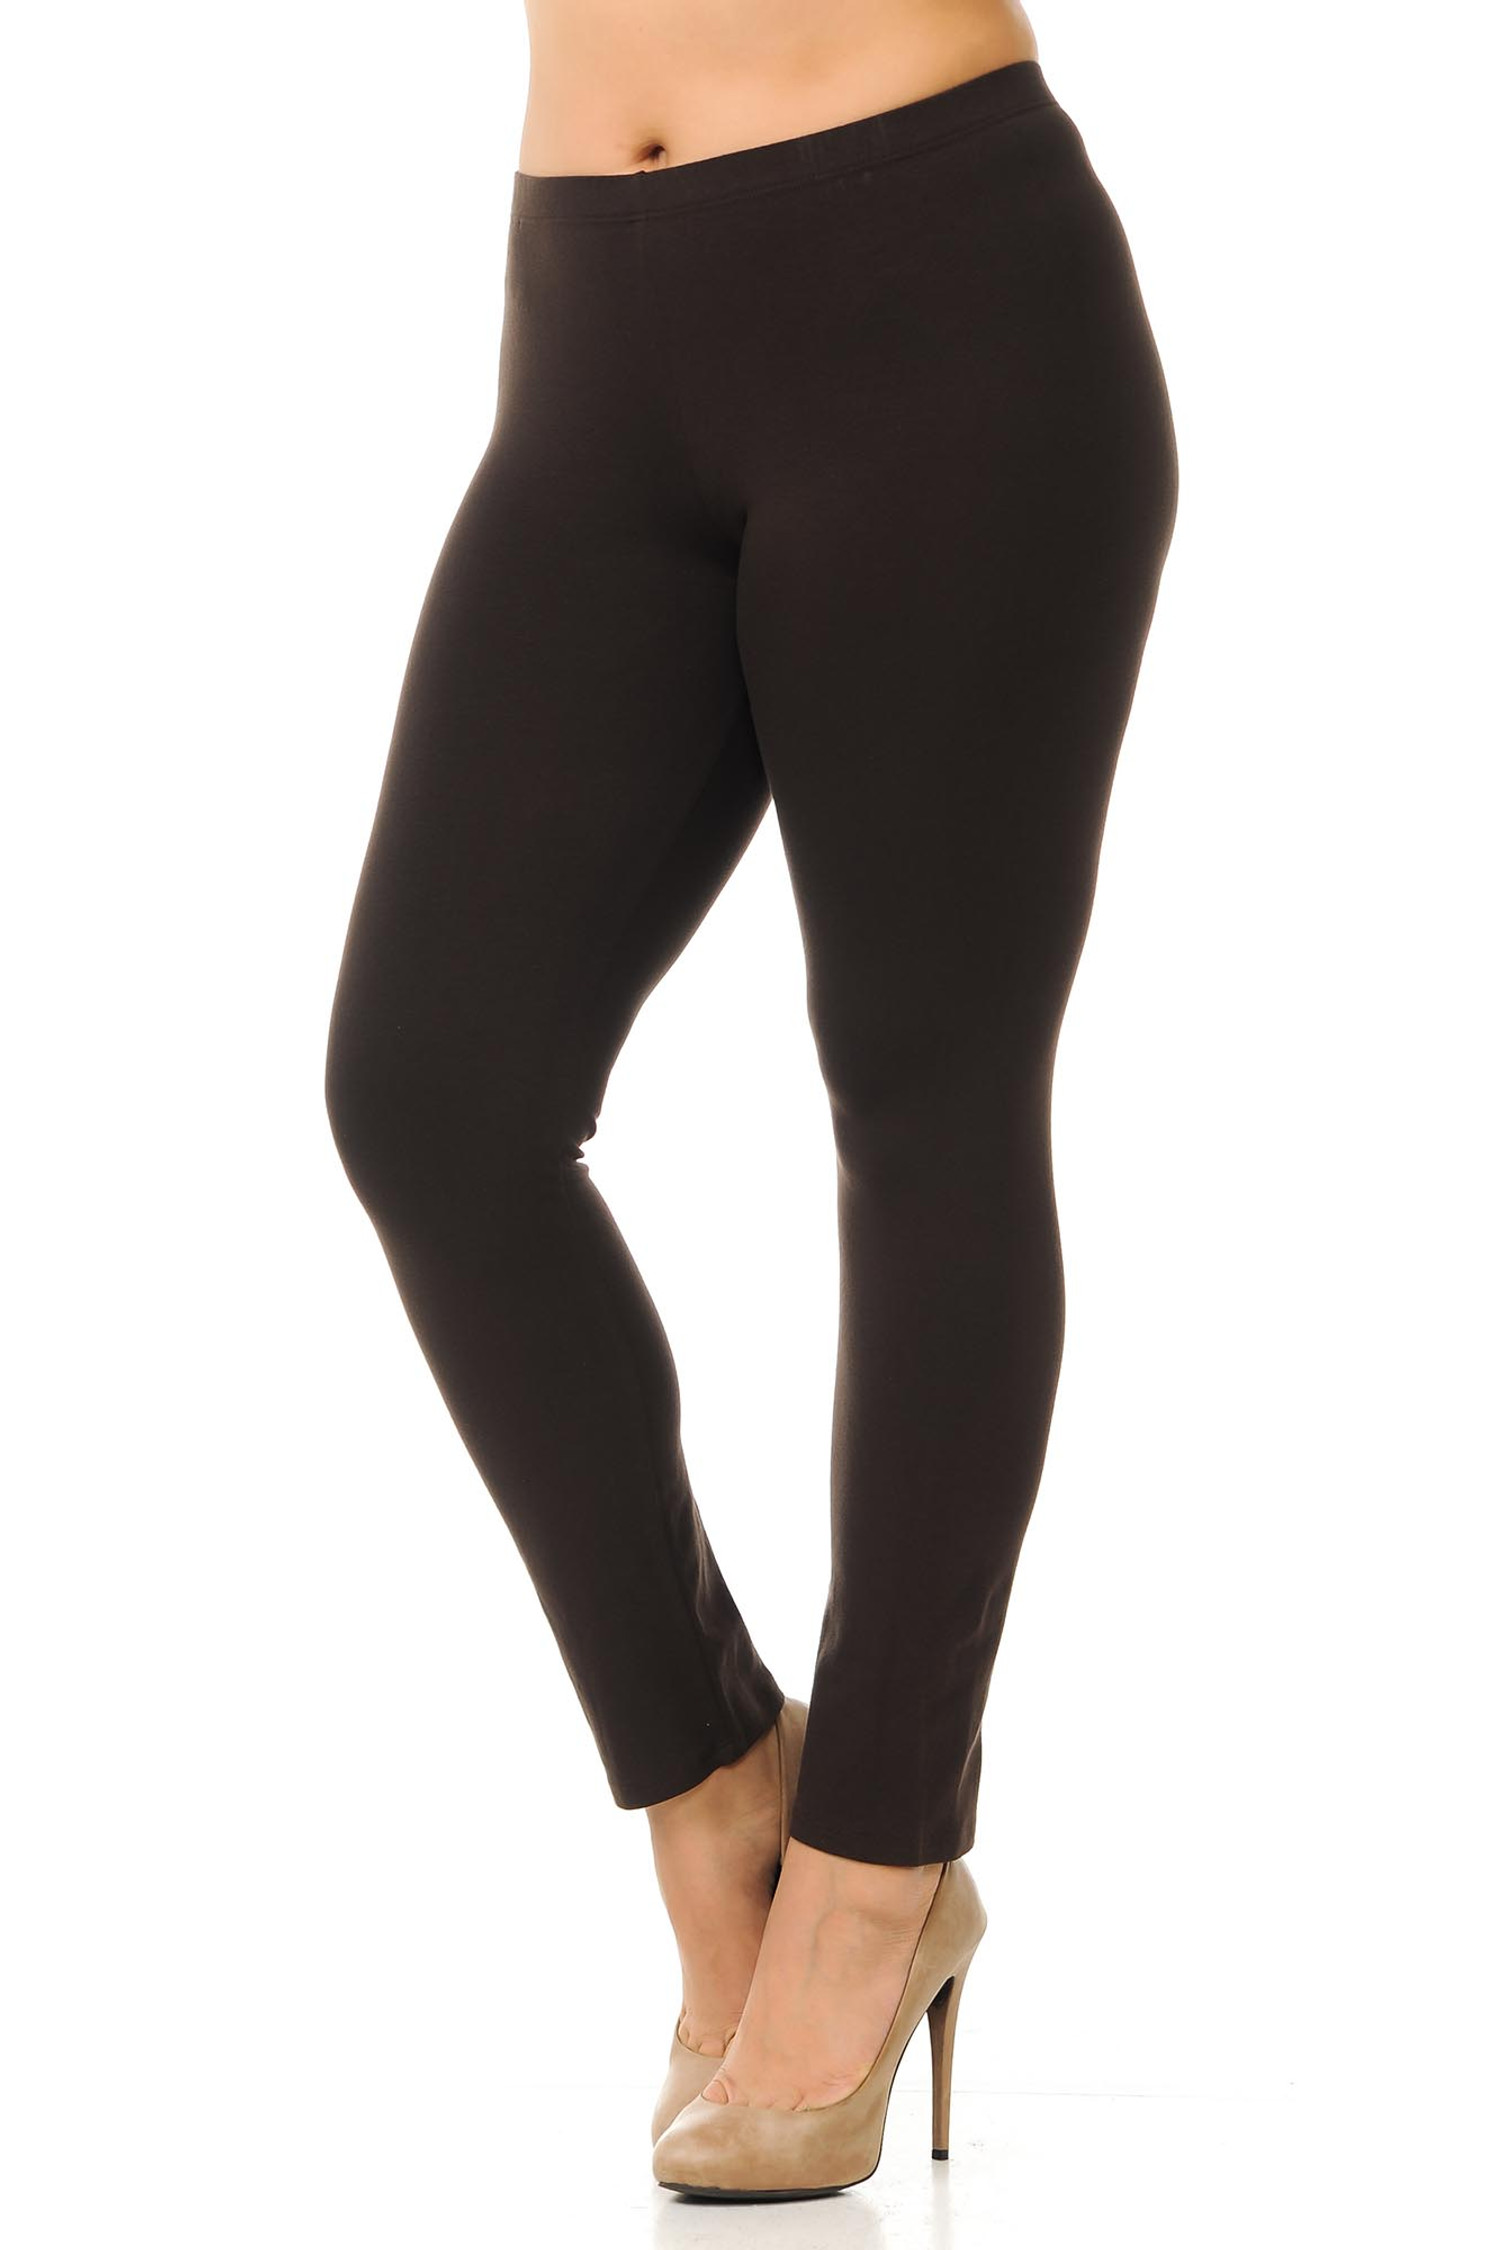 45 degree angled view of brown plus size qUSA Cotton Full Length Leggings